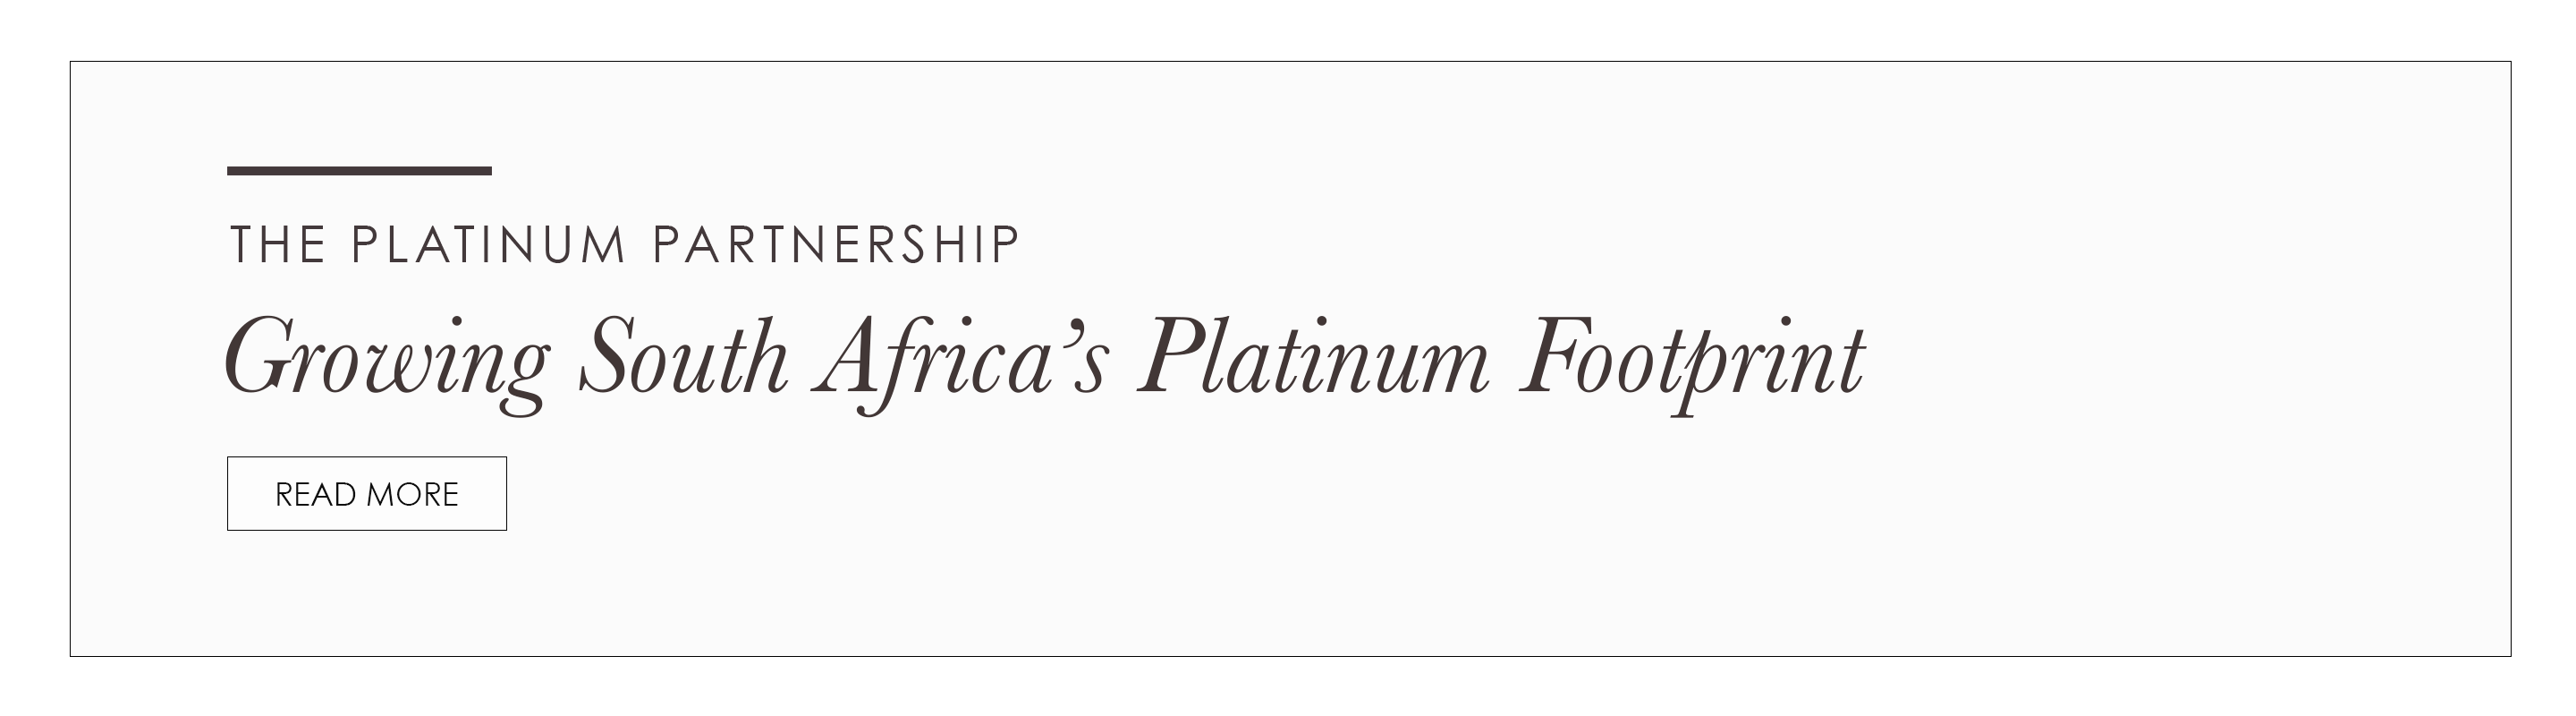 Platinum Partnership Growing South Africa's Platinum Footprint Promotional Banner